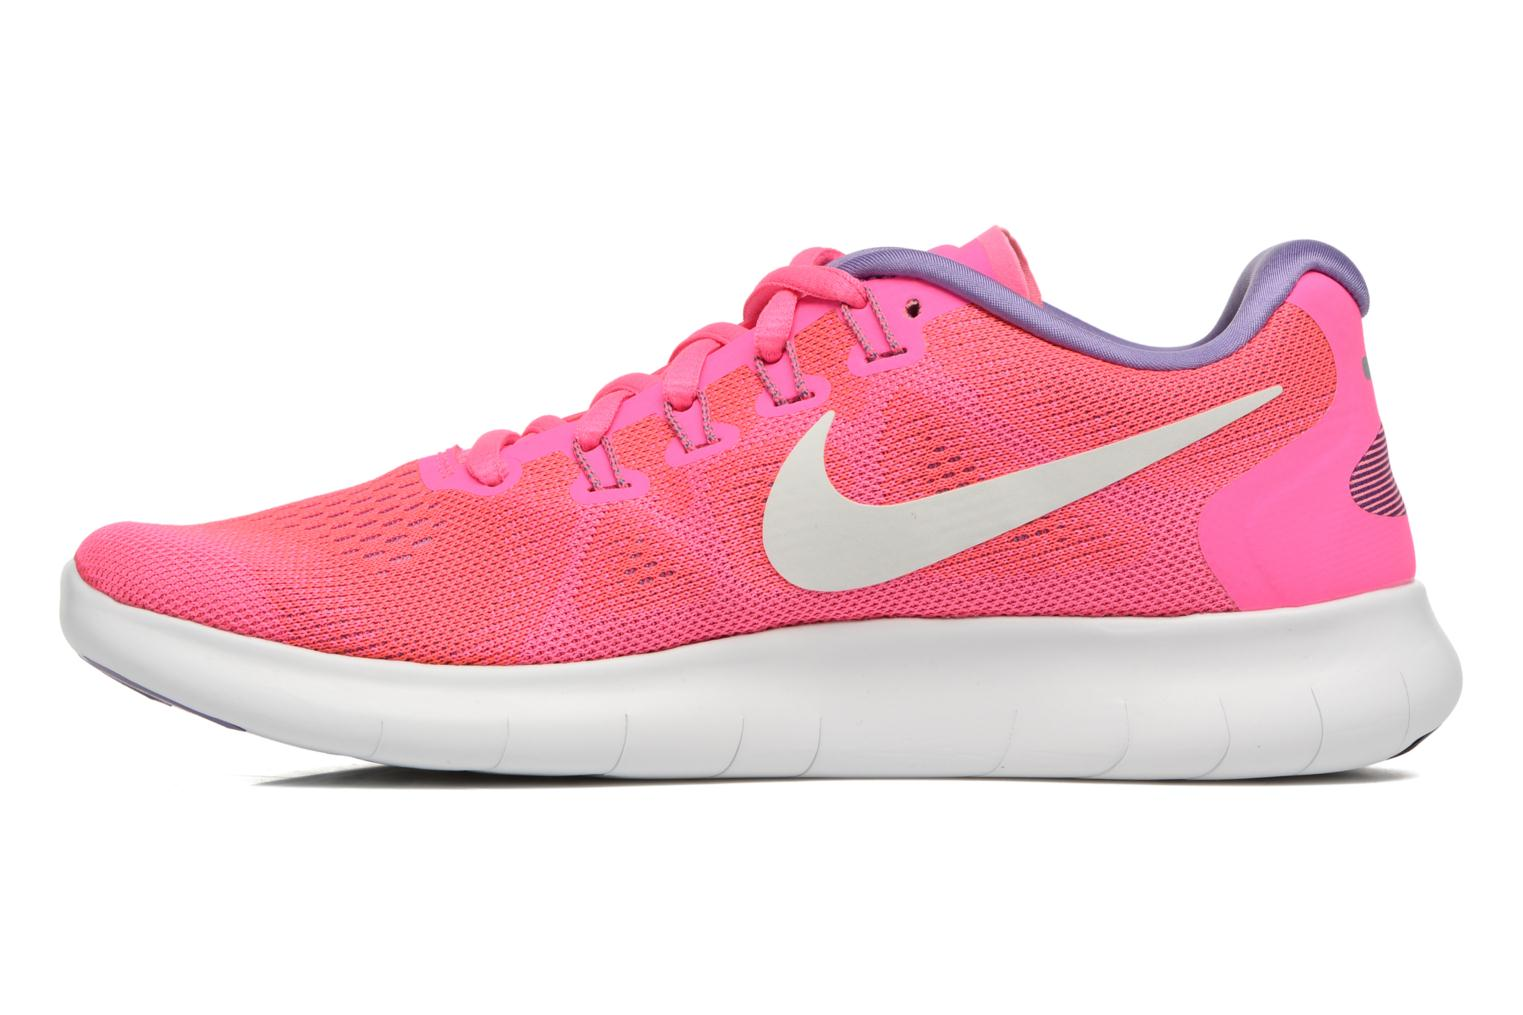 Chaussures de sport Nike Wmns Nike Free Rn 2017 Rose vue face